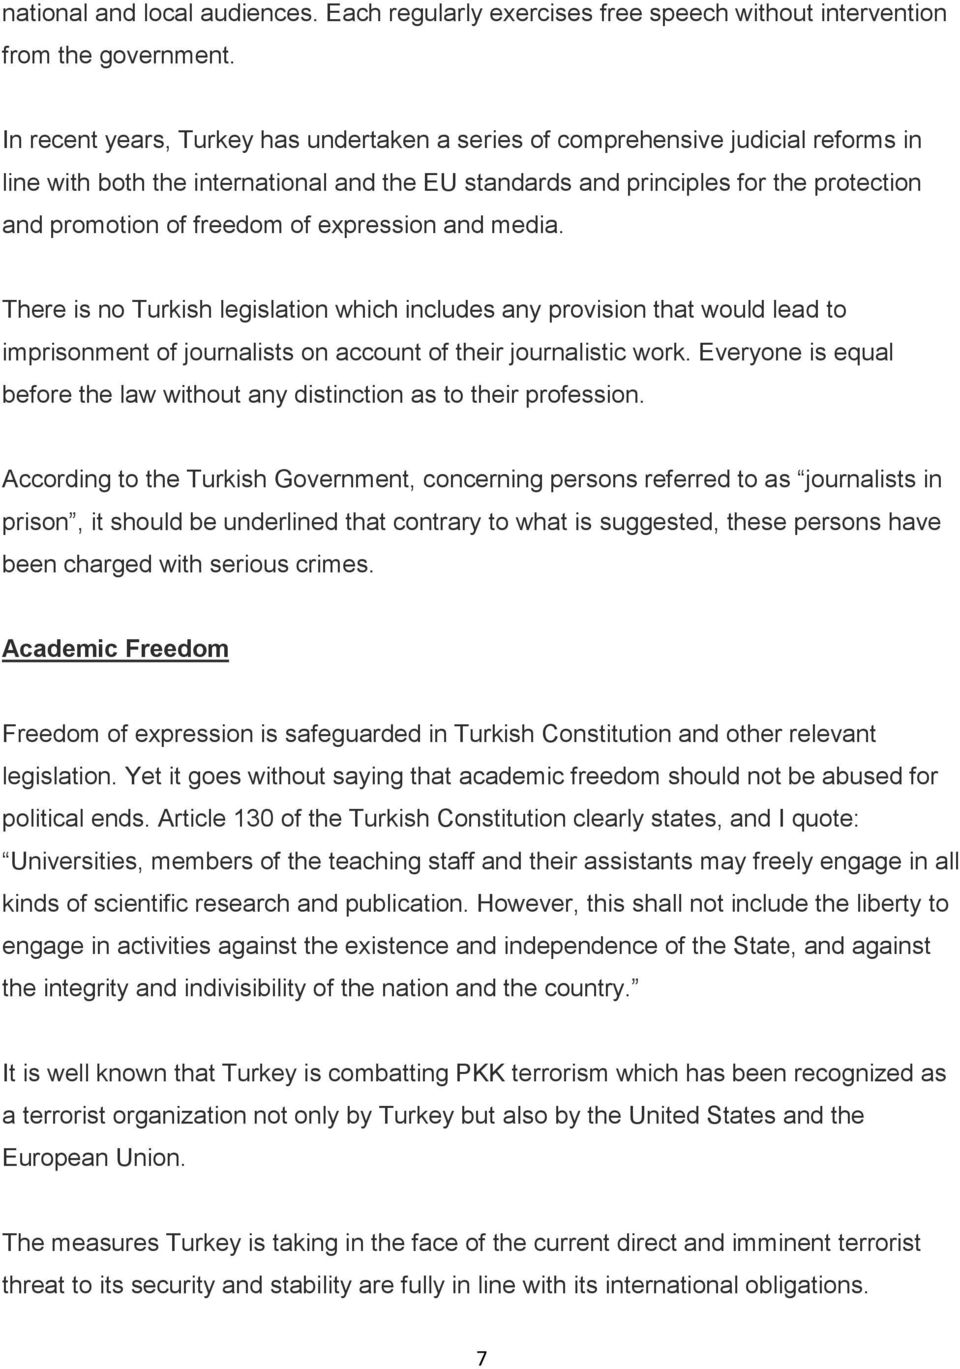 of expression and media. There is no Turkish legislation which includes any provision that would lead to imprisonment of journalists on account of their journalistic work.